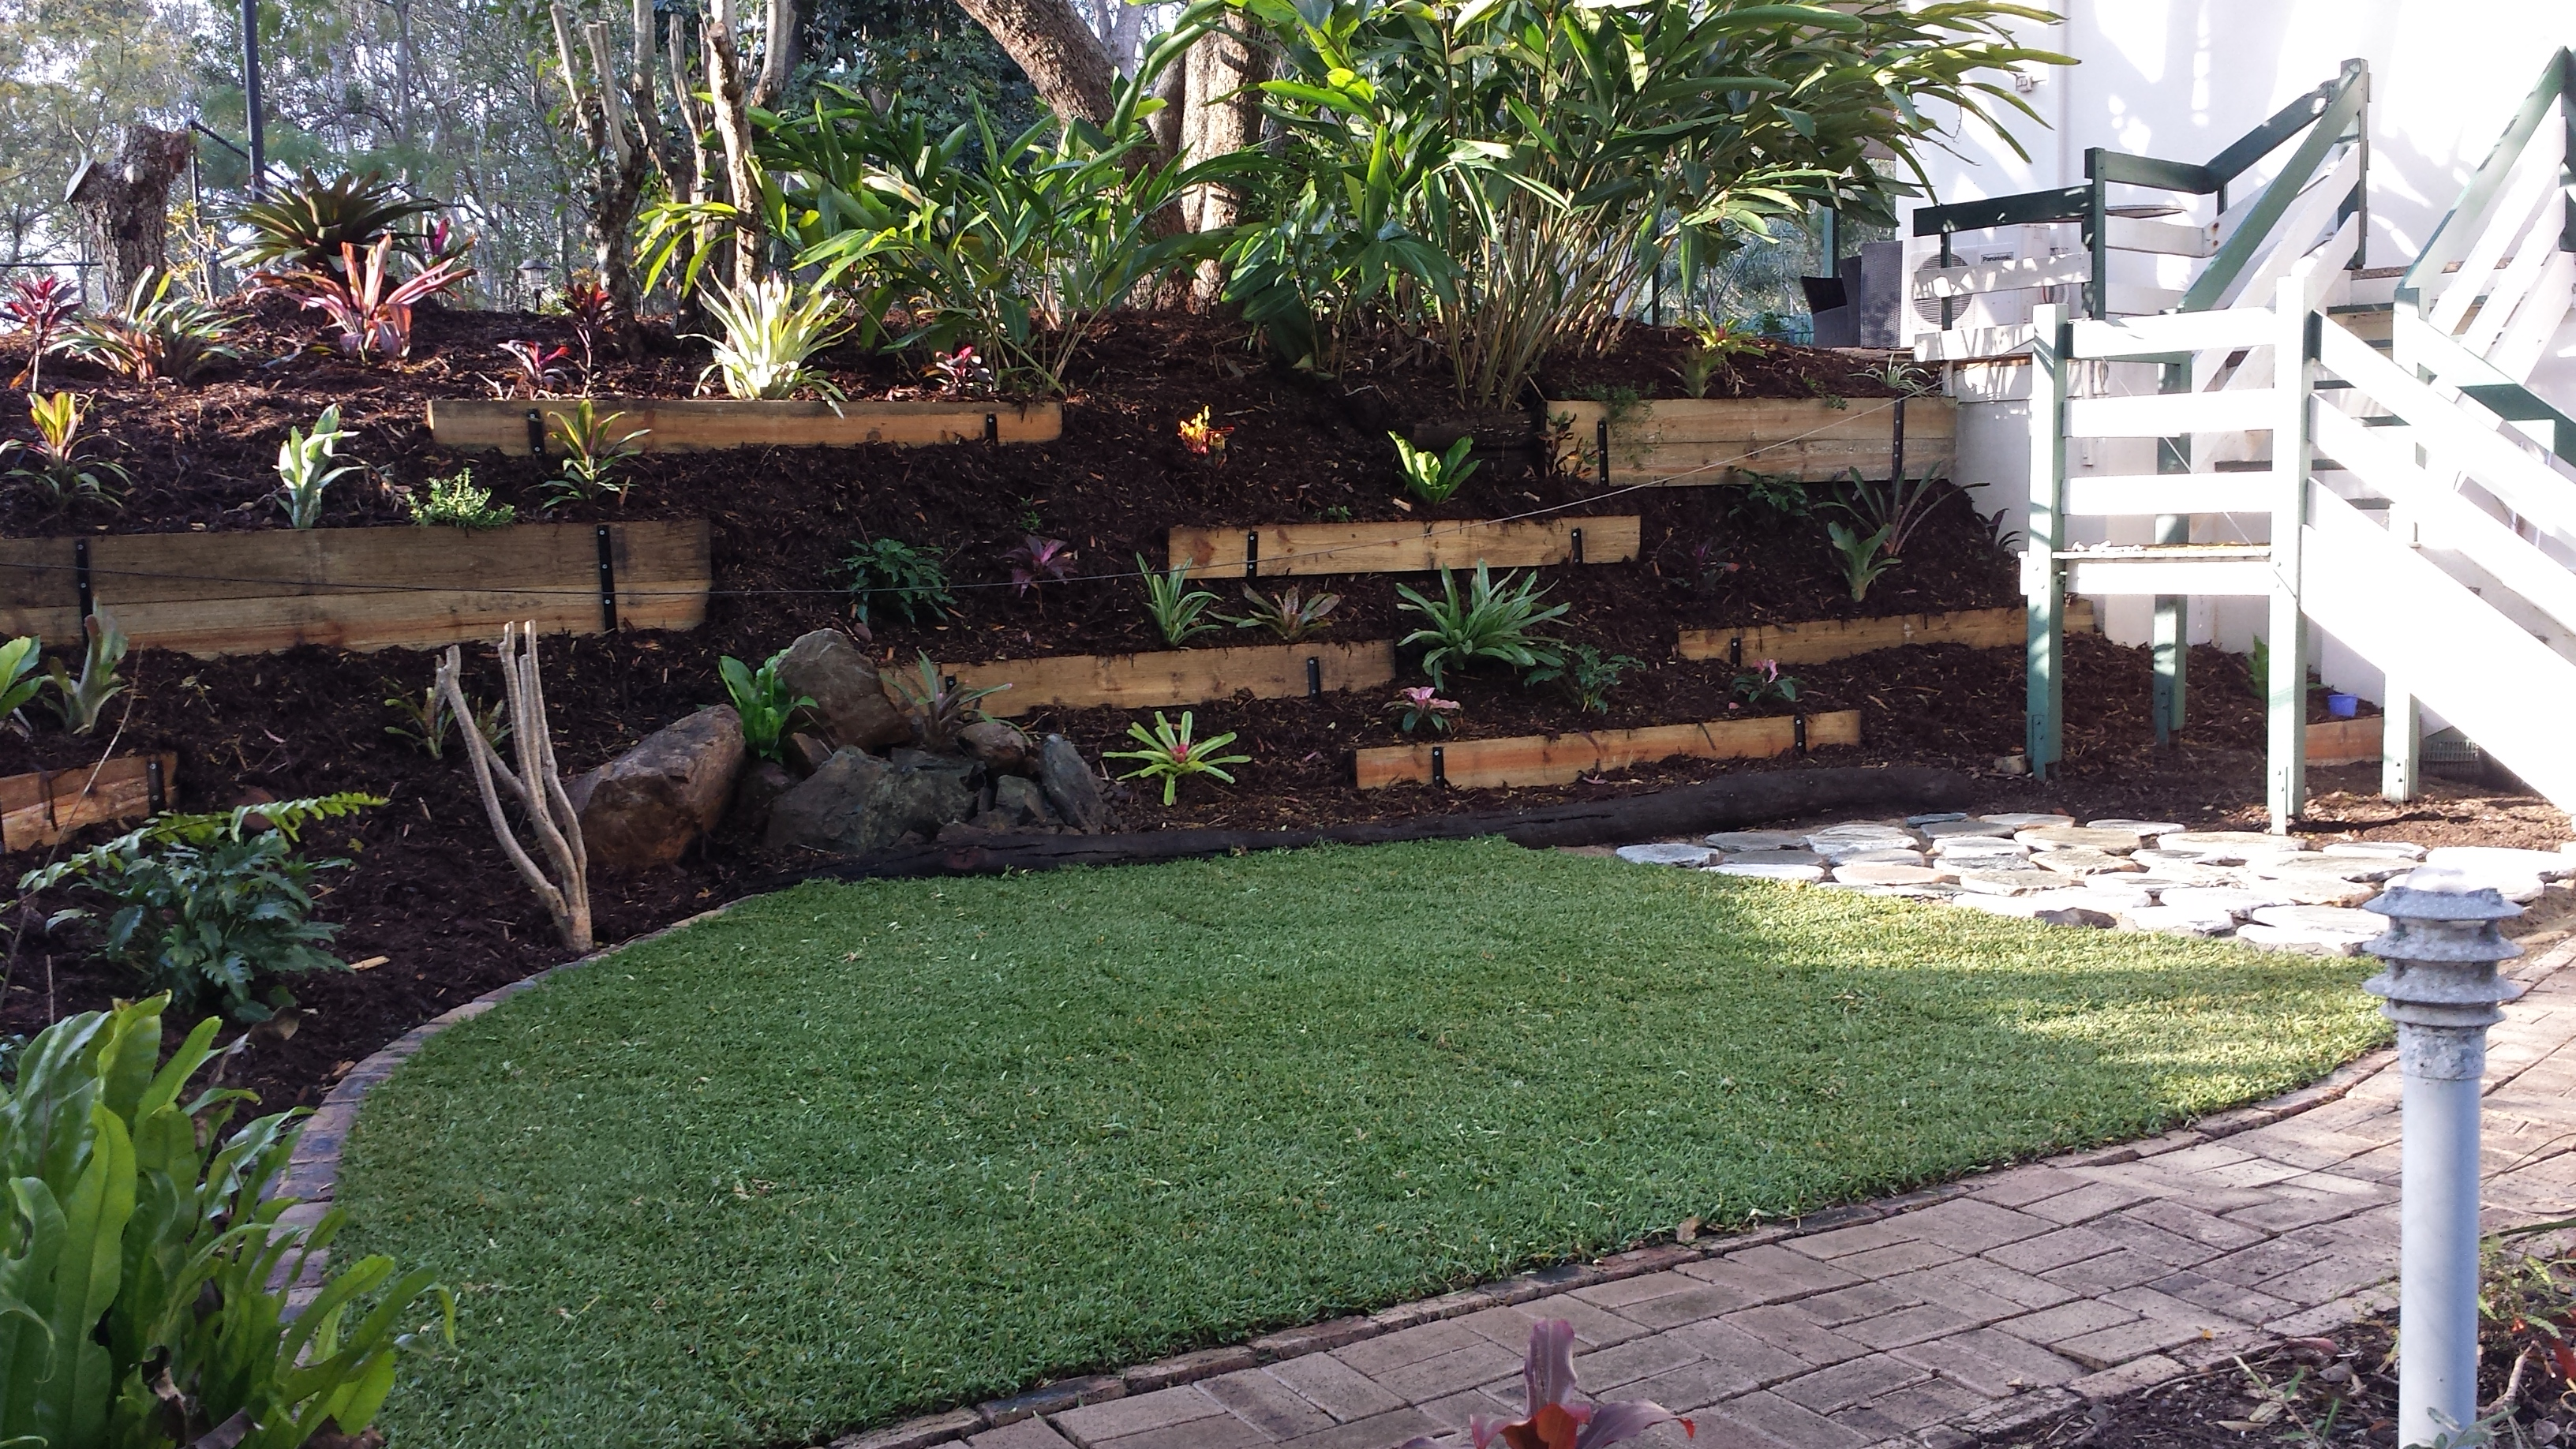 Garden Design Ideas Queensland Of Front Yard Landscape Design Ideas  Queensland The Garden